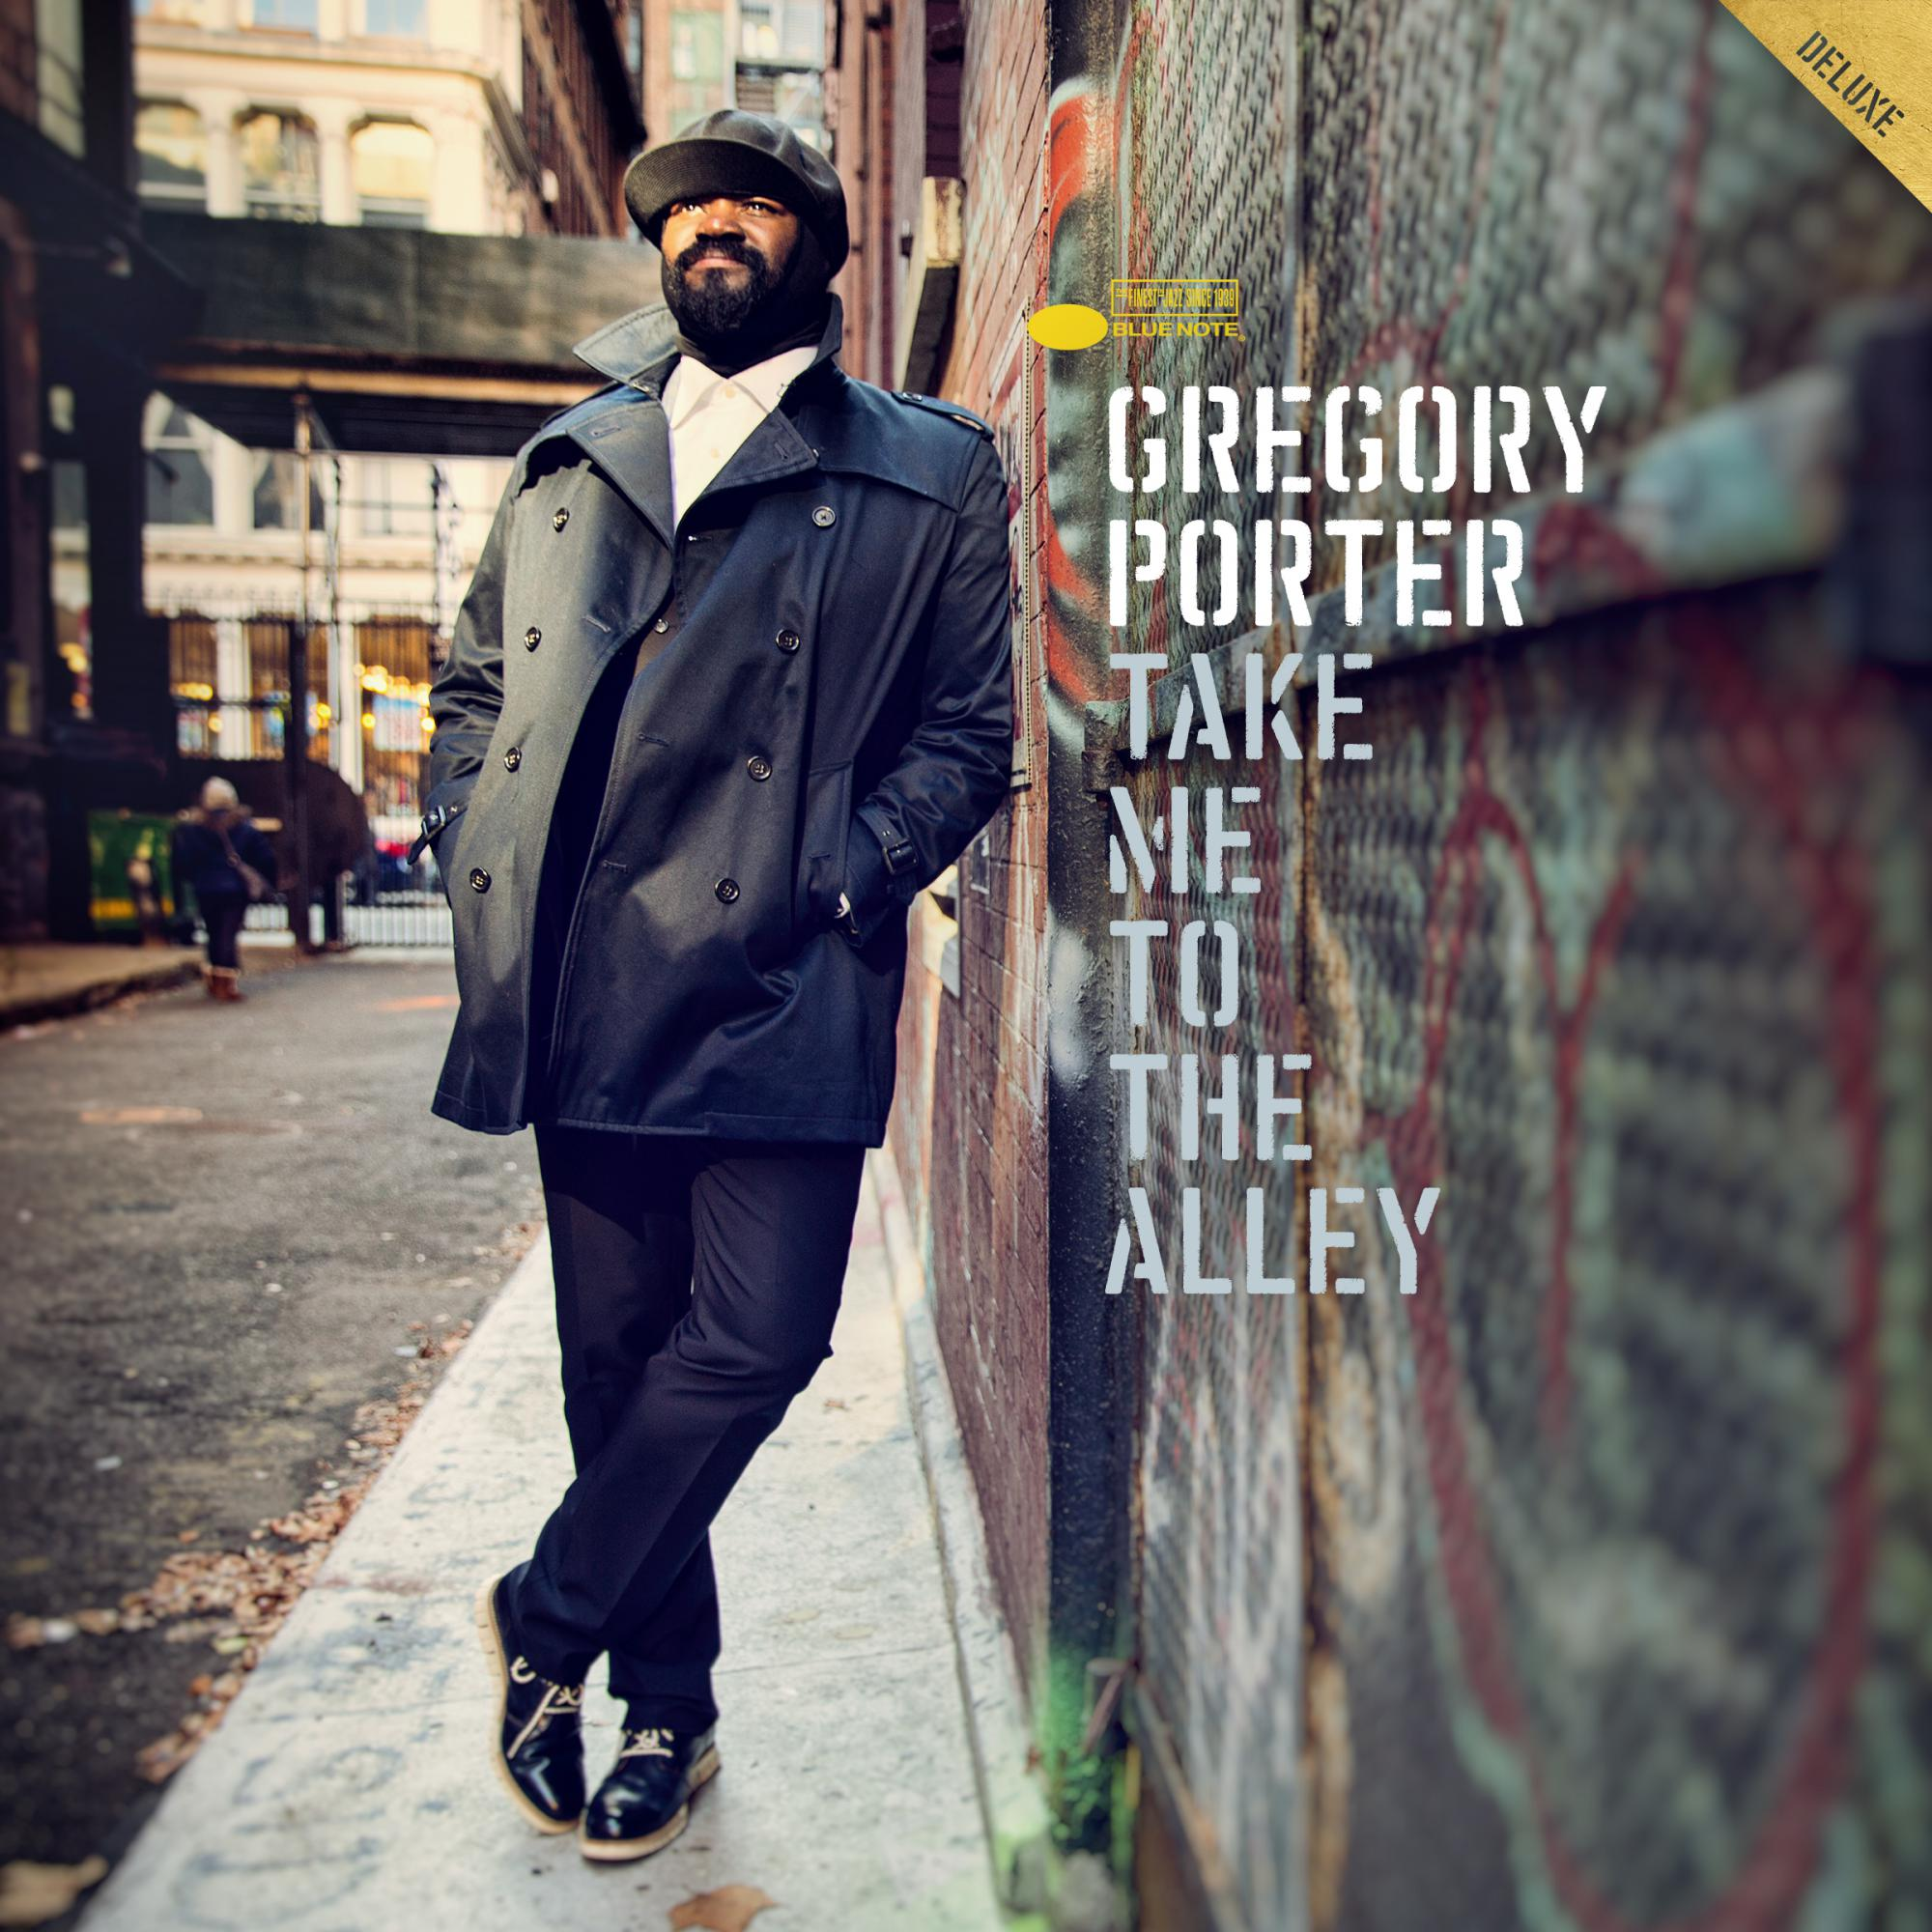 GREGORY PORTER(グレゴリーポーター) -  [Take Me To The Alley](Deluxe / CD + DVD)